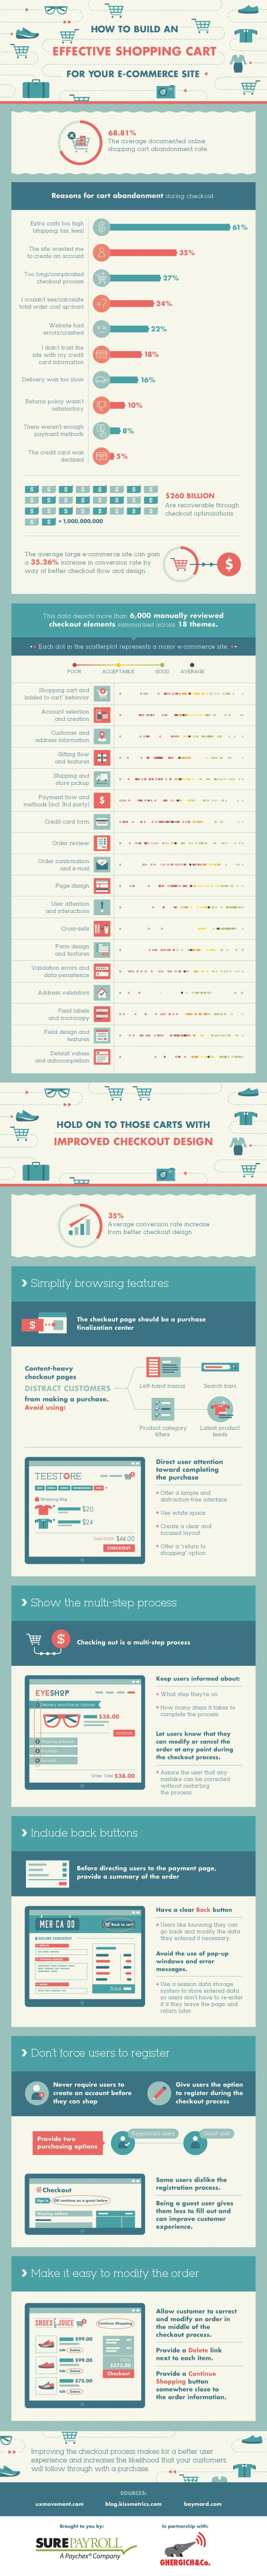 how-to-build-an-effective-shopping-cart-for-your-ecommerce-site_584eeb544104e